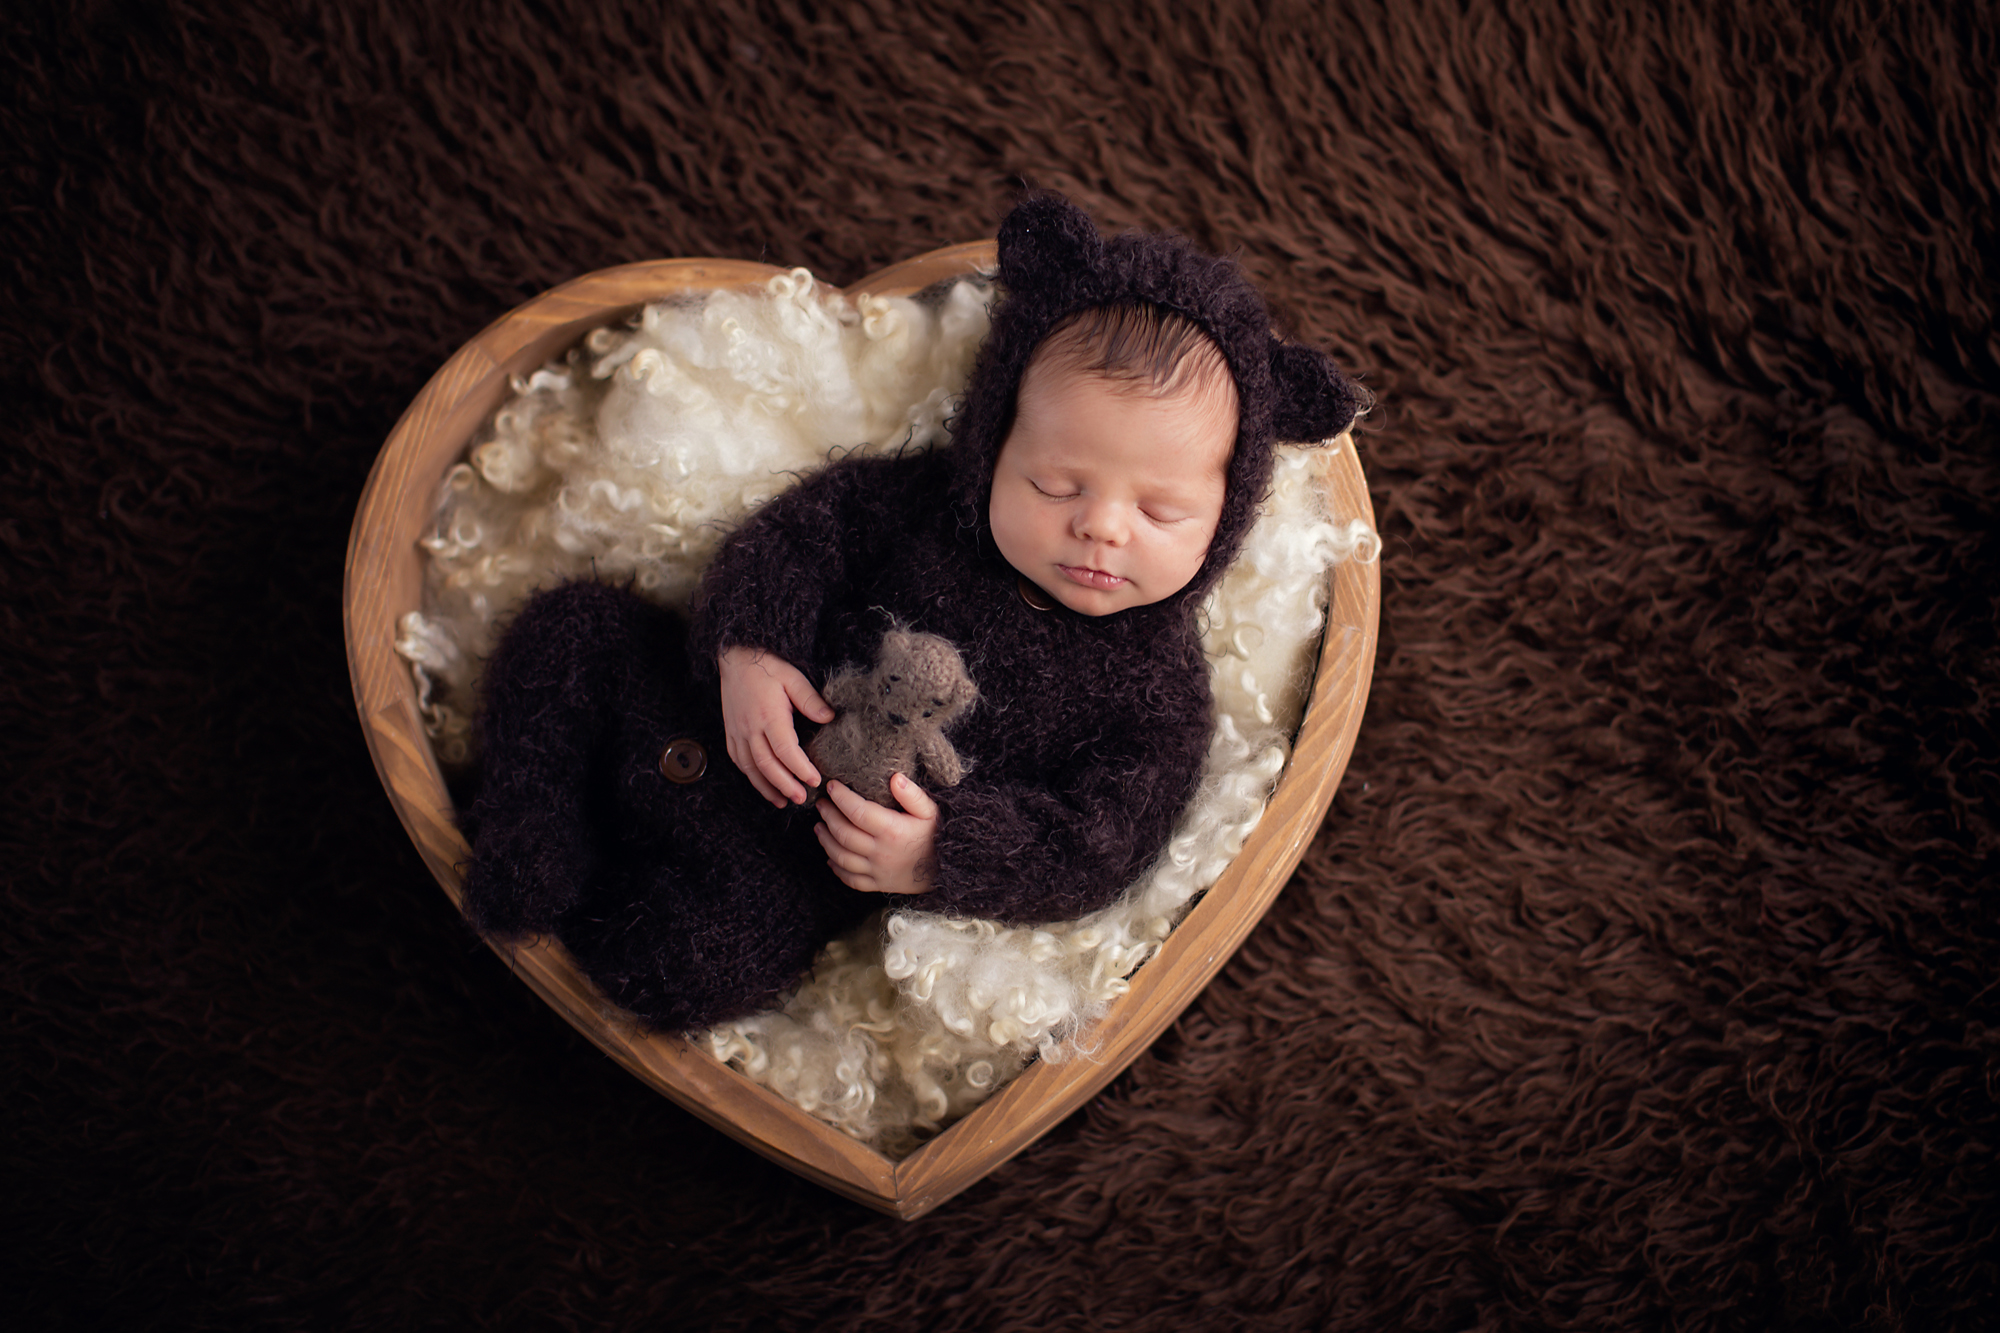 Newborn baby boy photoshoot ideas. Calgary and Airdrie newborn baby photographer - Milashka Photography. Baby boy is dressed in a bear onesie and is holding a little bear toy and is sleeping in a heart bowl.